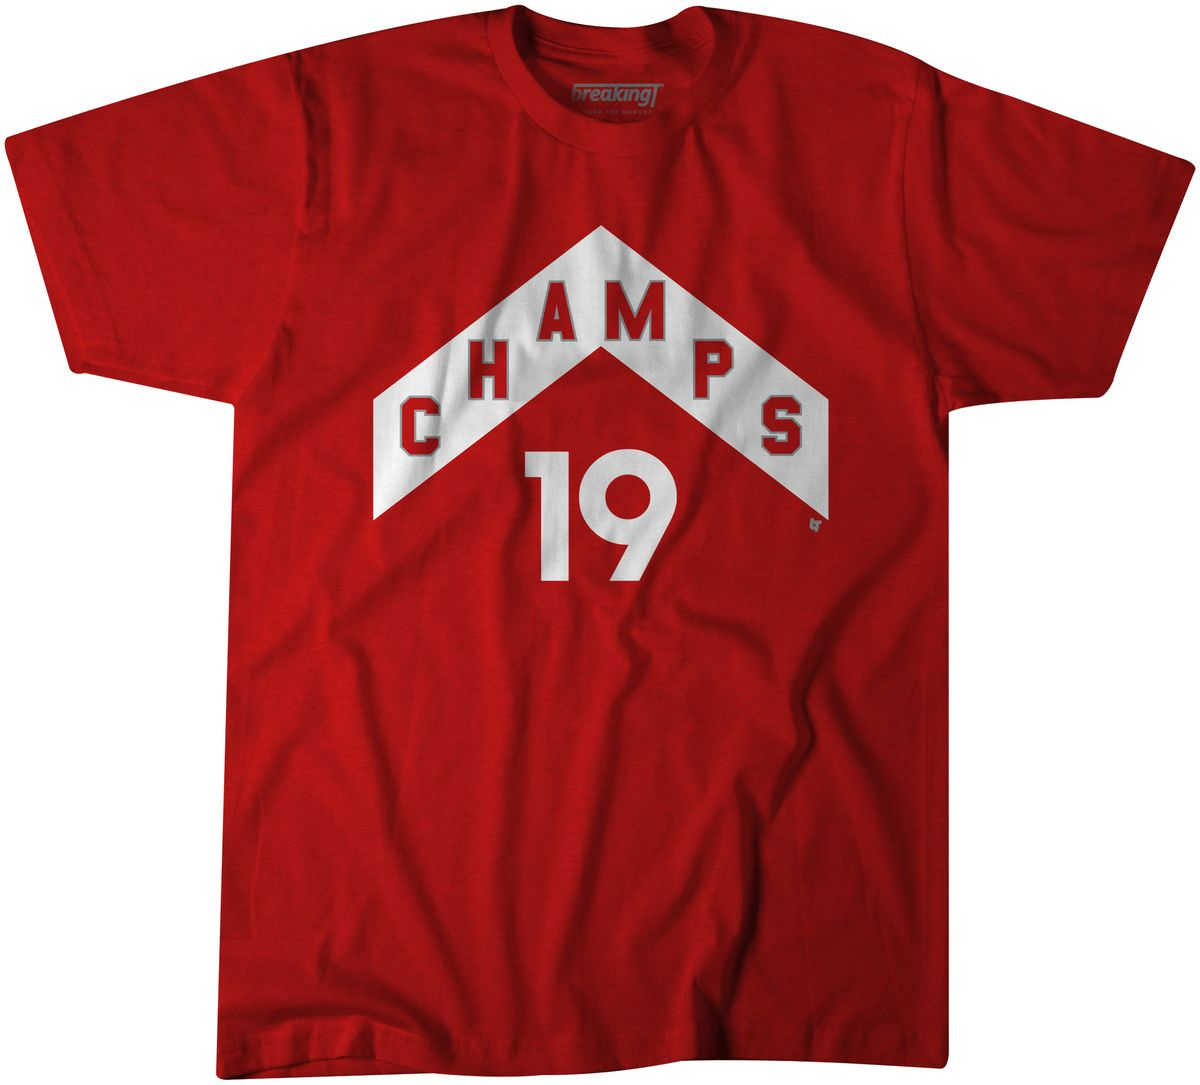 8f44088ce96 2019 NBA Finals: Here's all the Raptors merch you need to celebrate ...